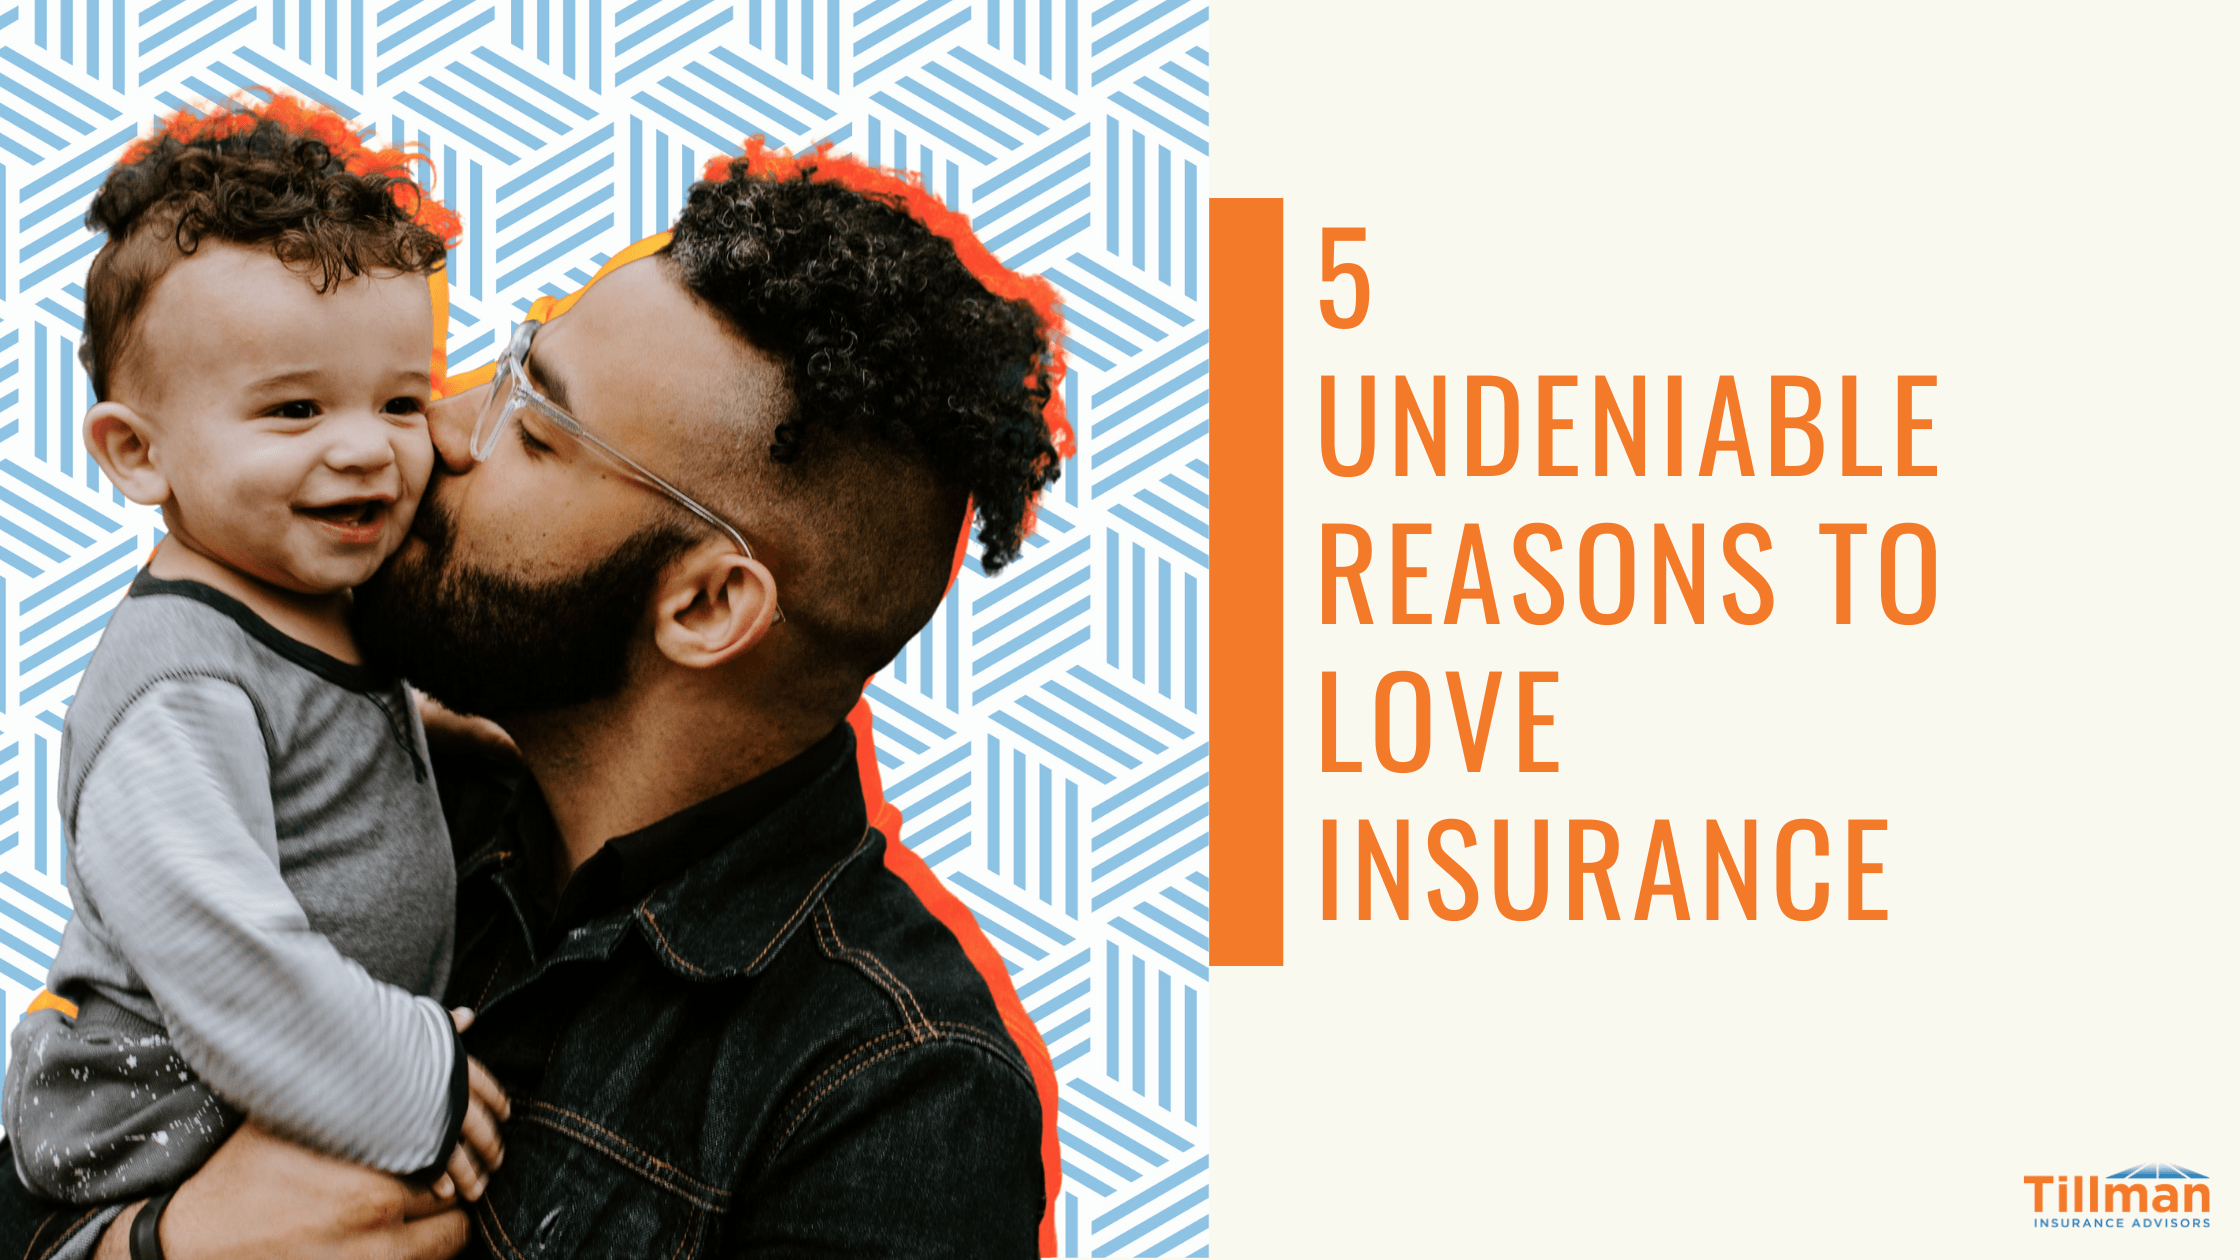 Reasons to Love Insurance